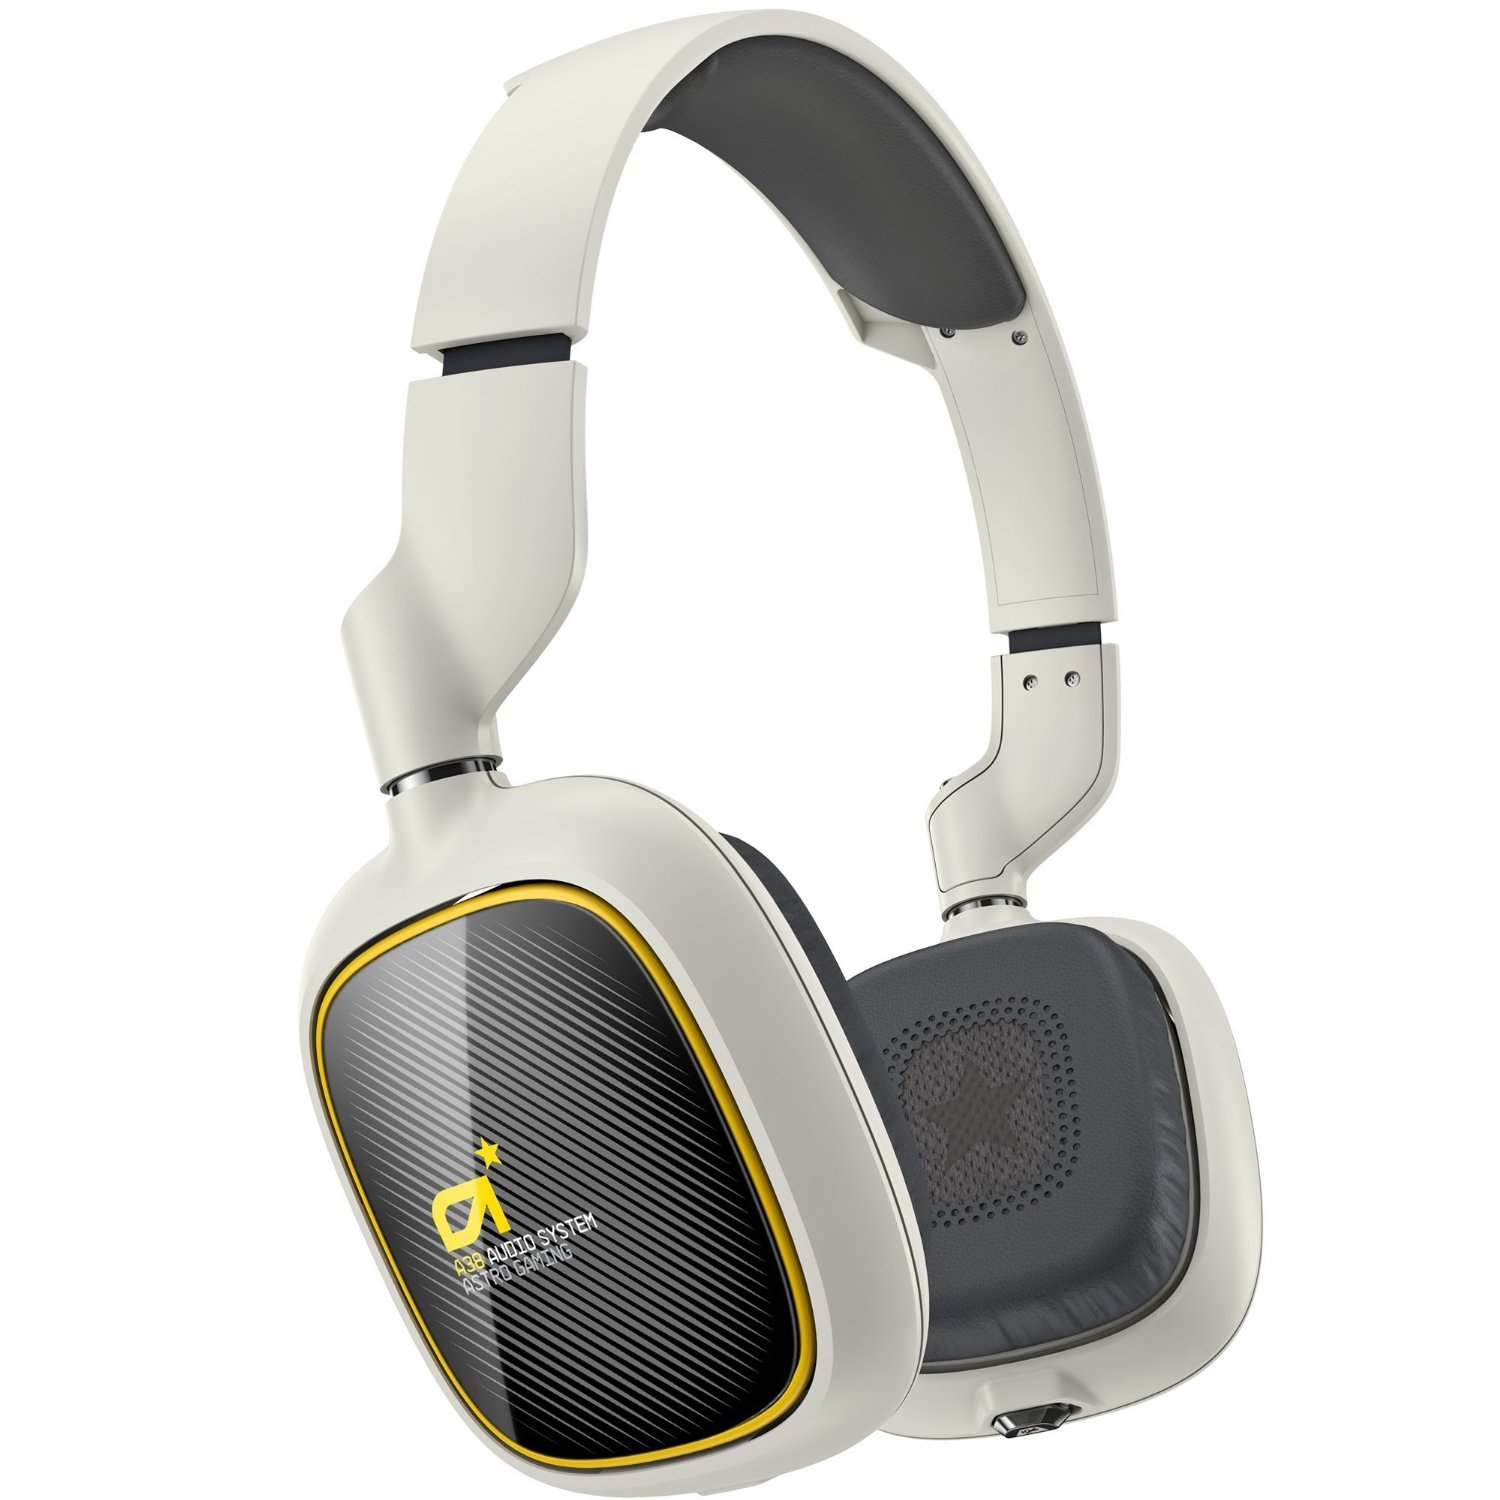 ずっと気になってた ASTRO Gaming A38 Wireless Headset, A38 White Wireless B01823IEP4 [並行輸入品] B01823IEP4, 工具の我天堂:3361015f --- arbimovel.dominiotemporario.com